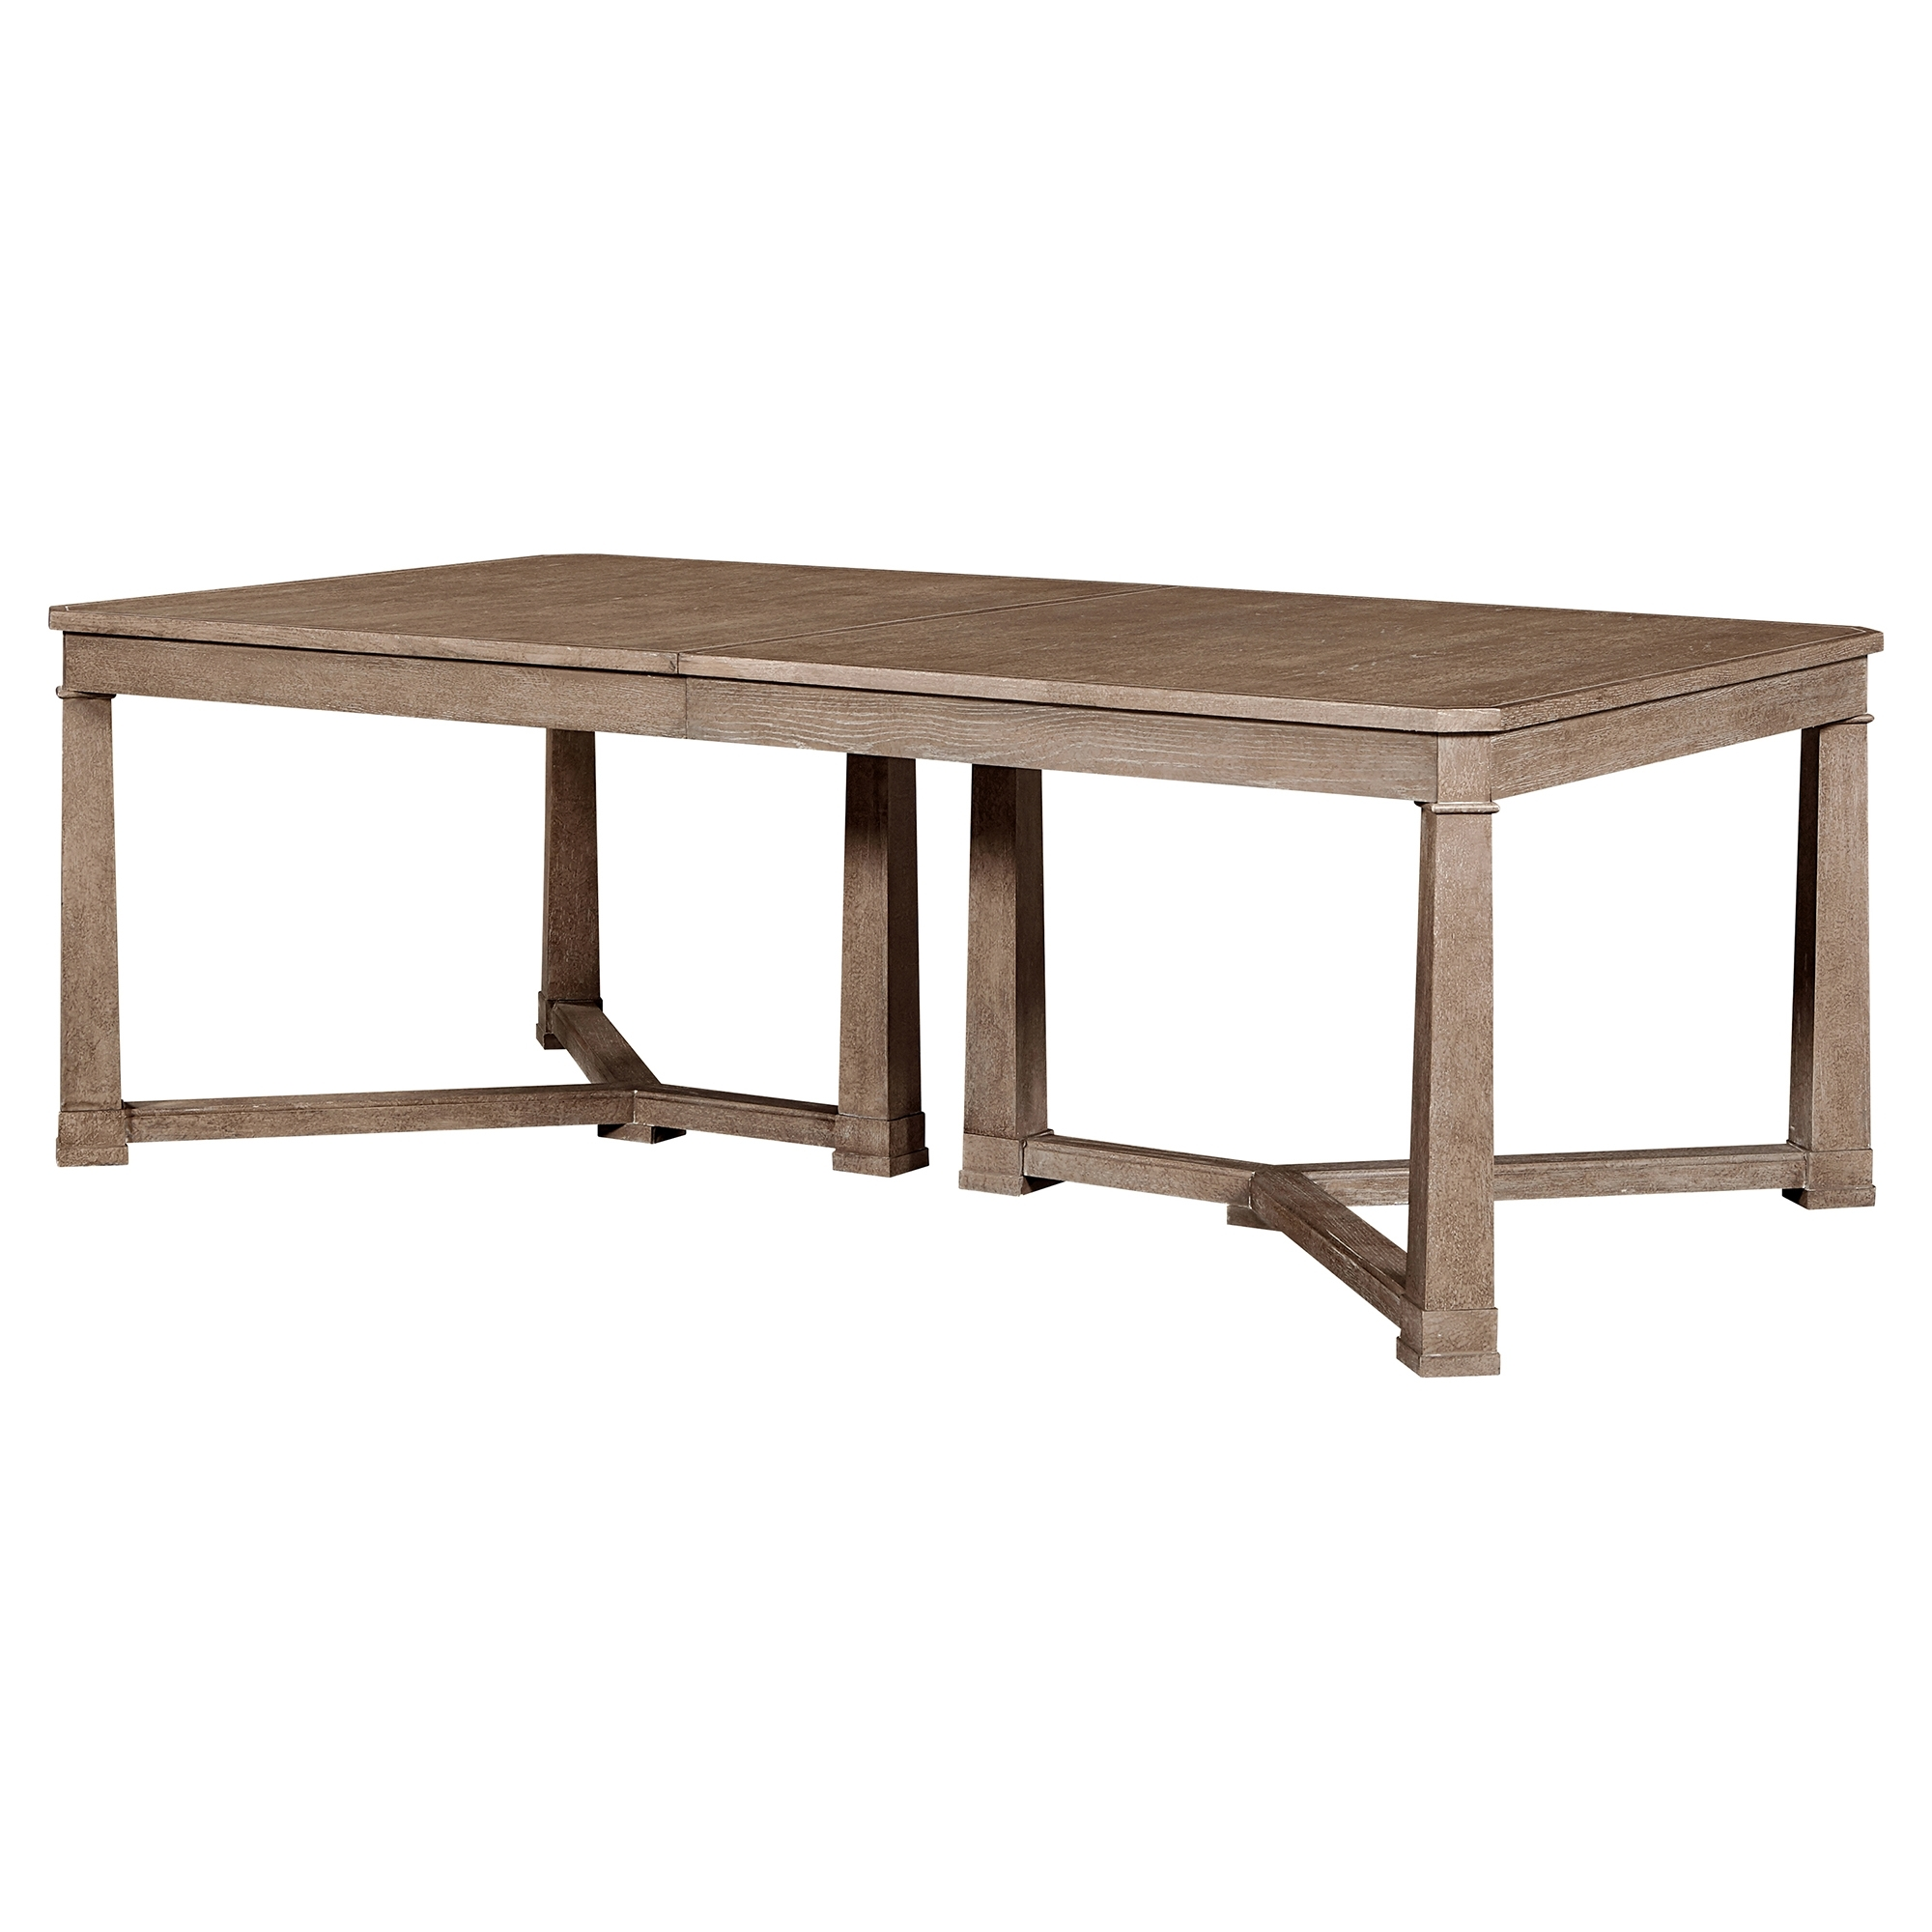 Combs 48 Inch Extension Dining Tables For Current Designer Dining Tables – Eclectic Dining Tables (View 3 of 25)